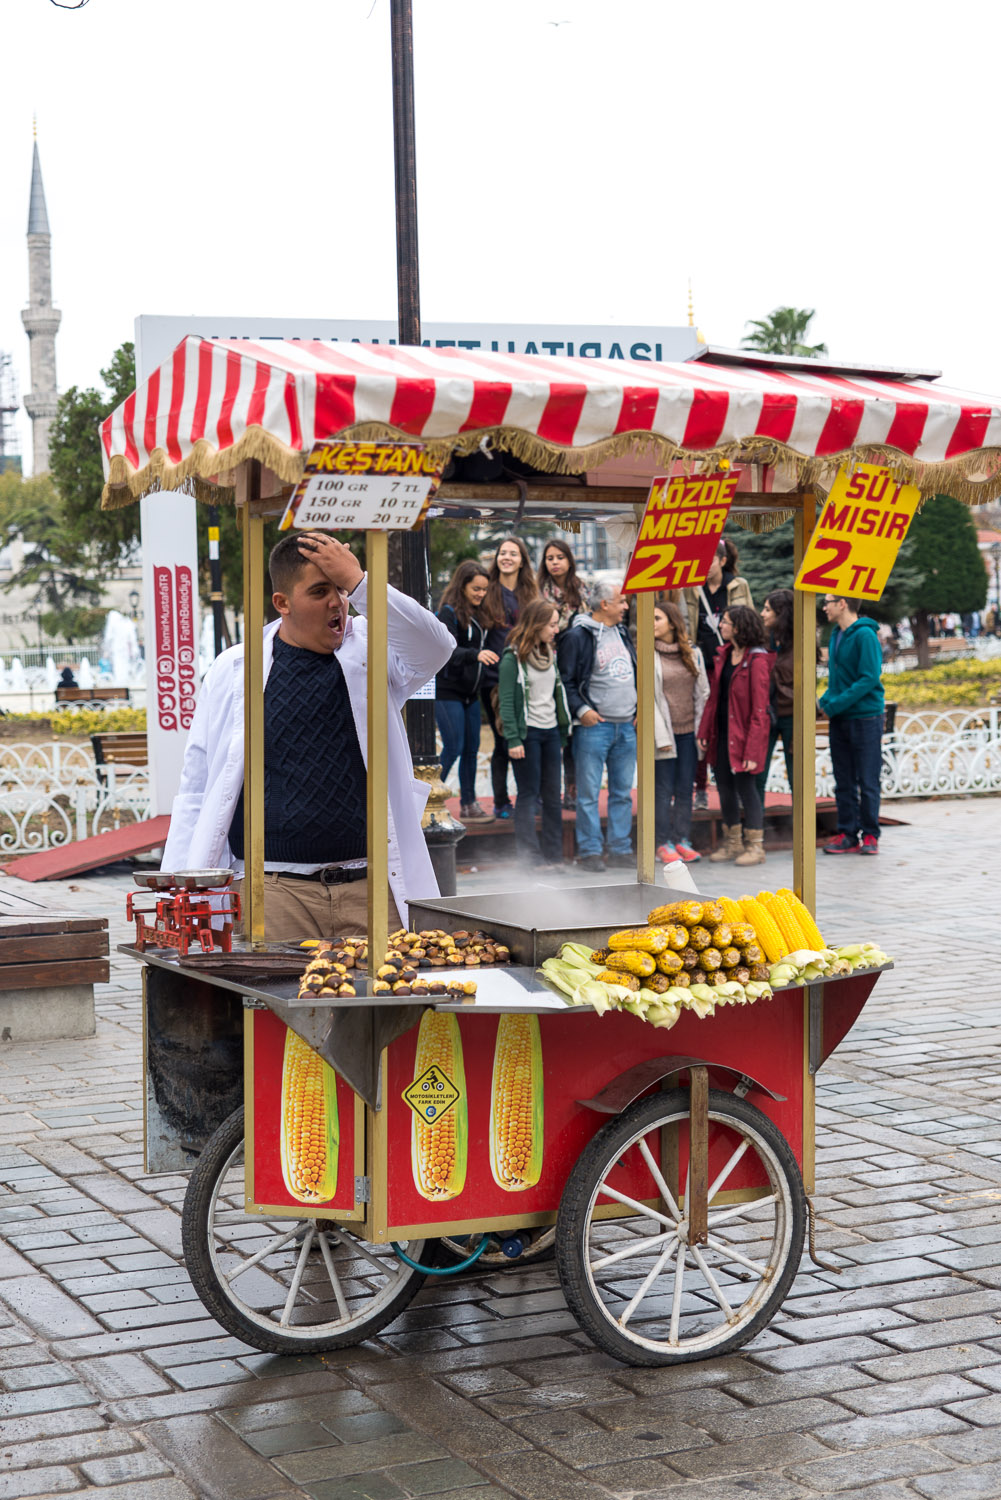 Street food seller in Istanbul, Turkey